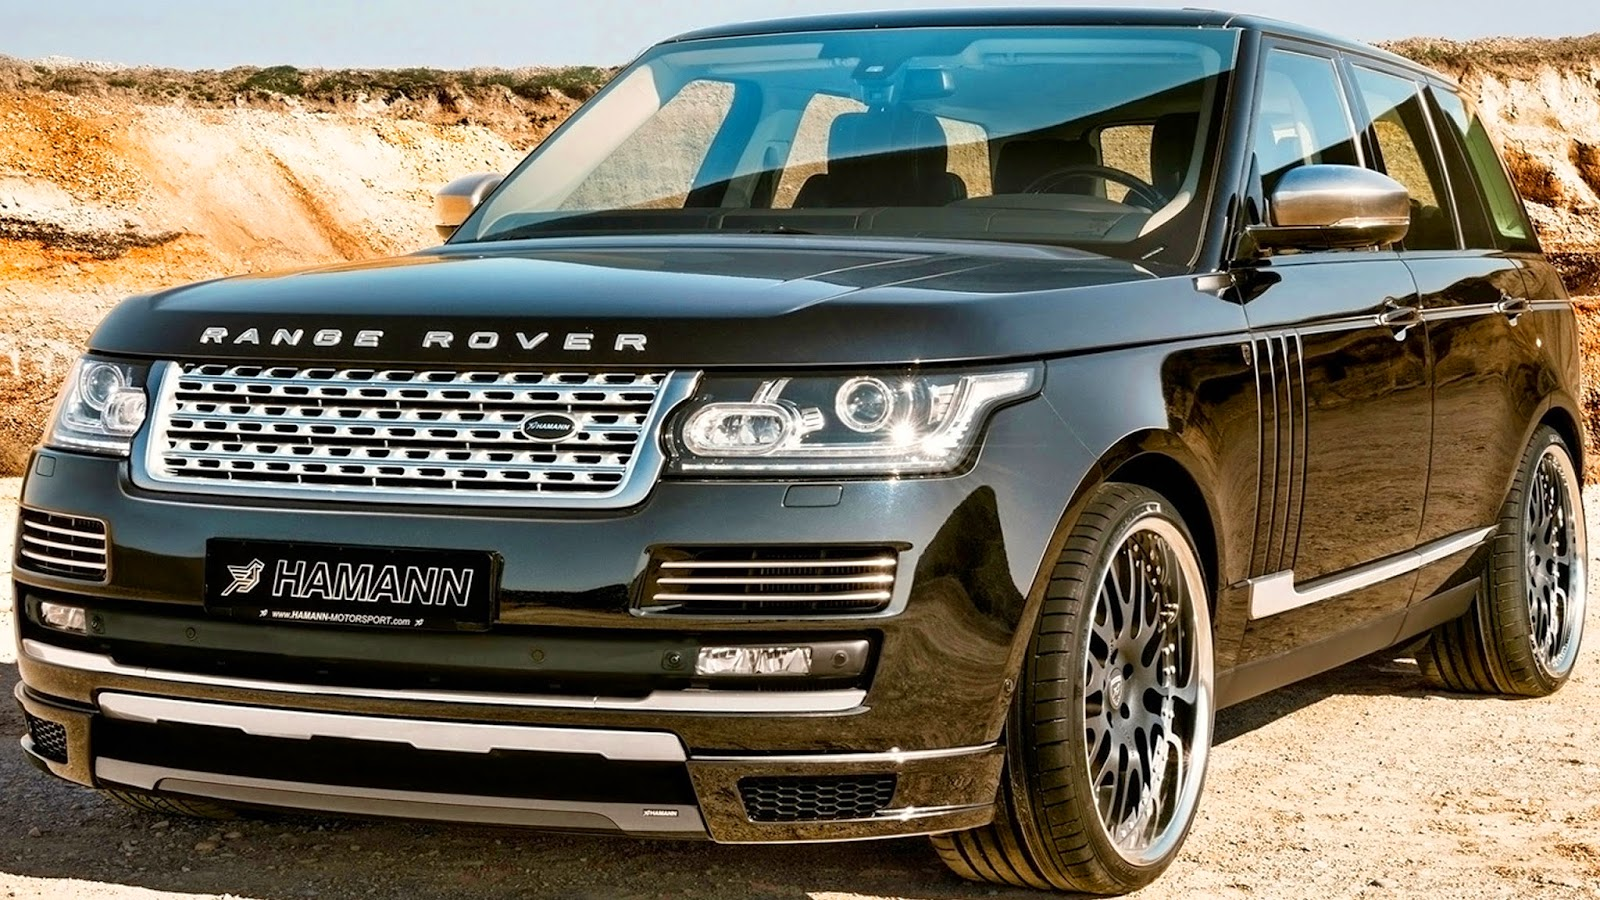 hamann land rover range rover vogue 2014 aro 23 500 cv carwp. Black Bedroom Furniture Sets. Home Design Ideas